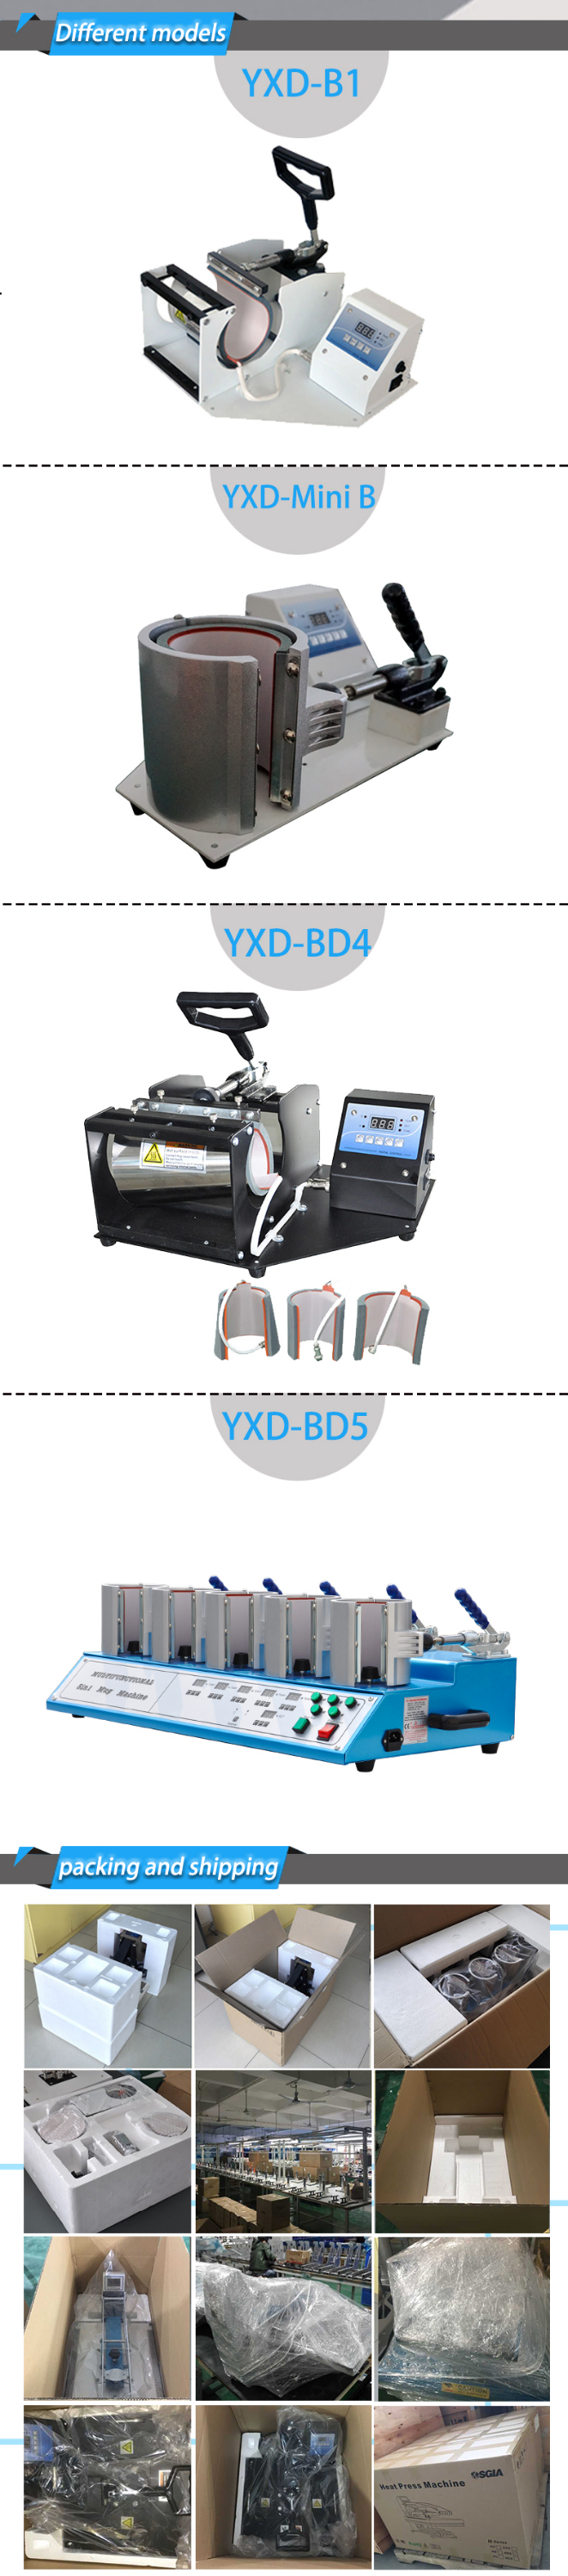 digital control box for heat press machine coffee cup printing machine